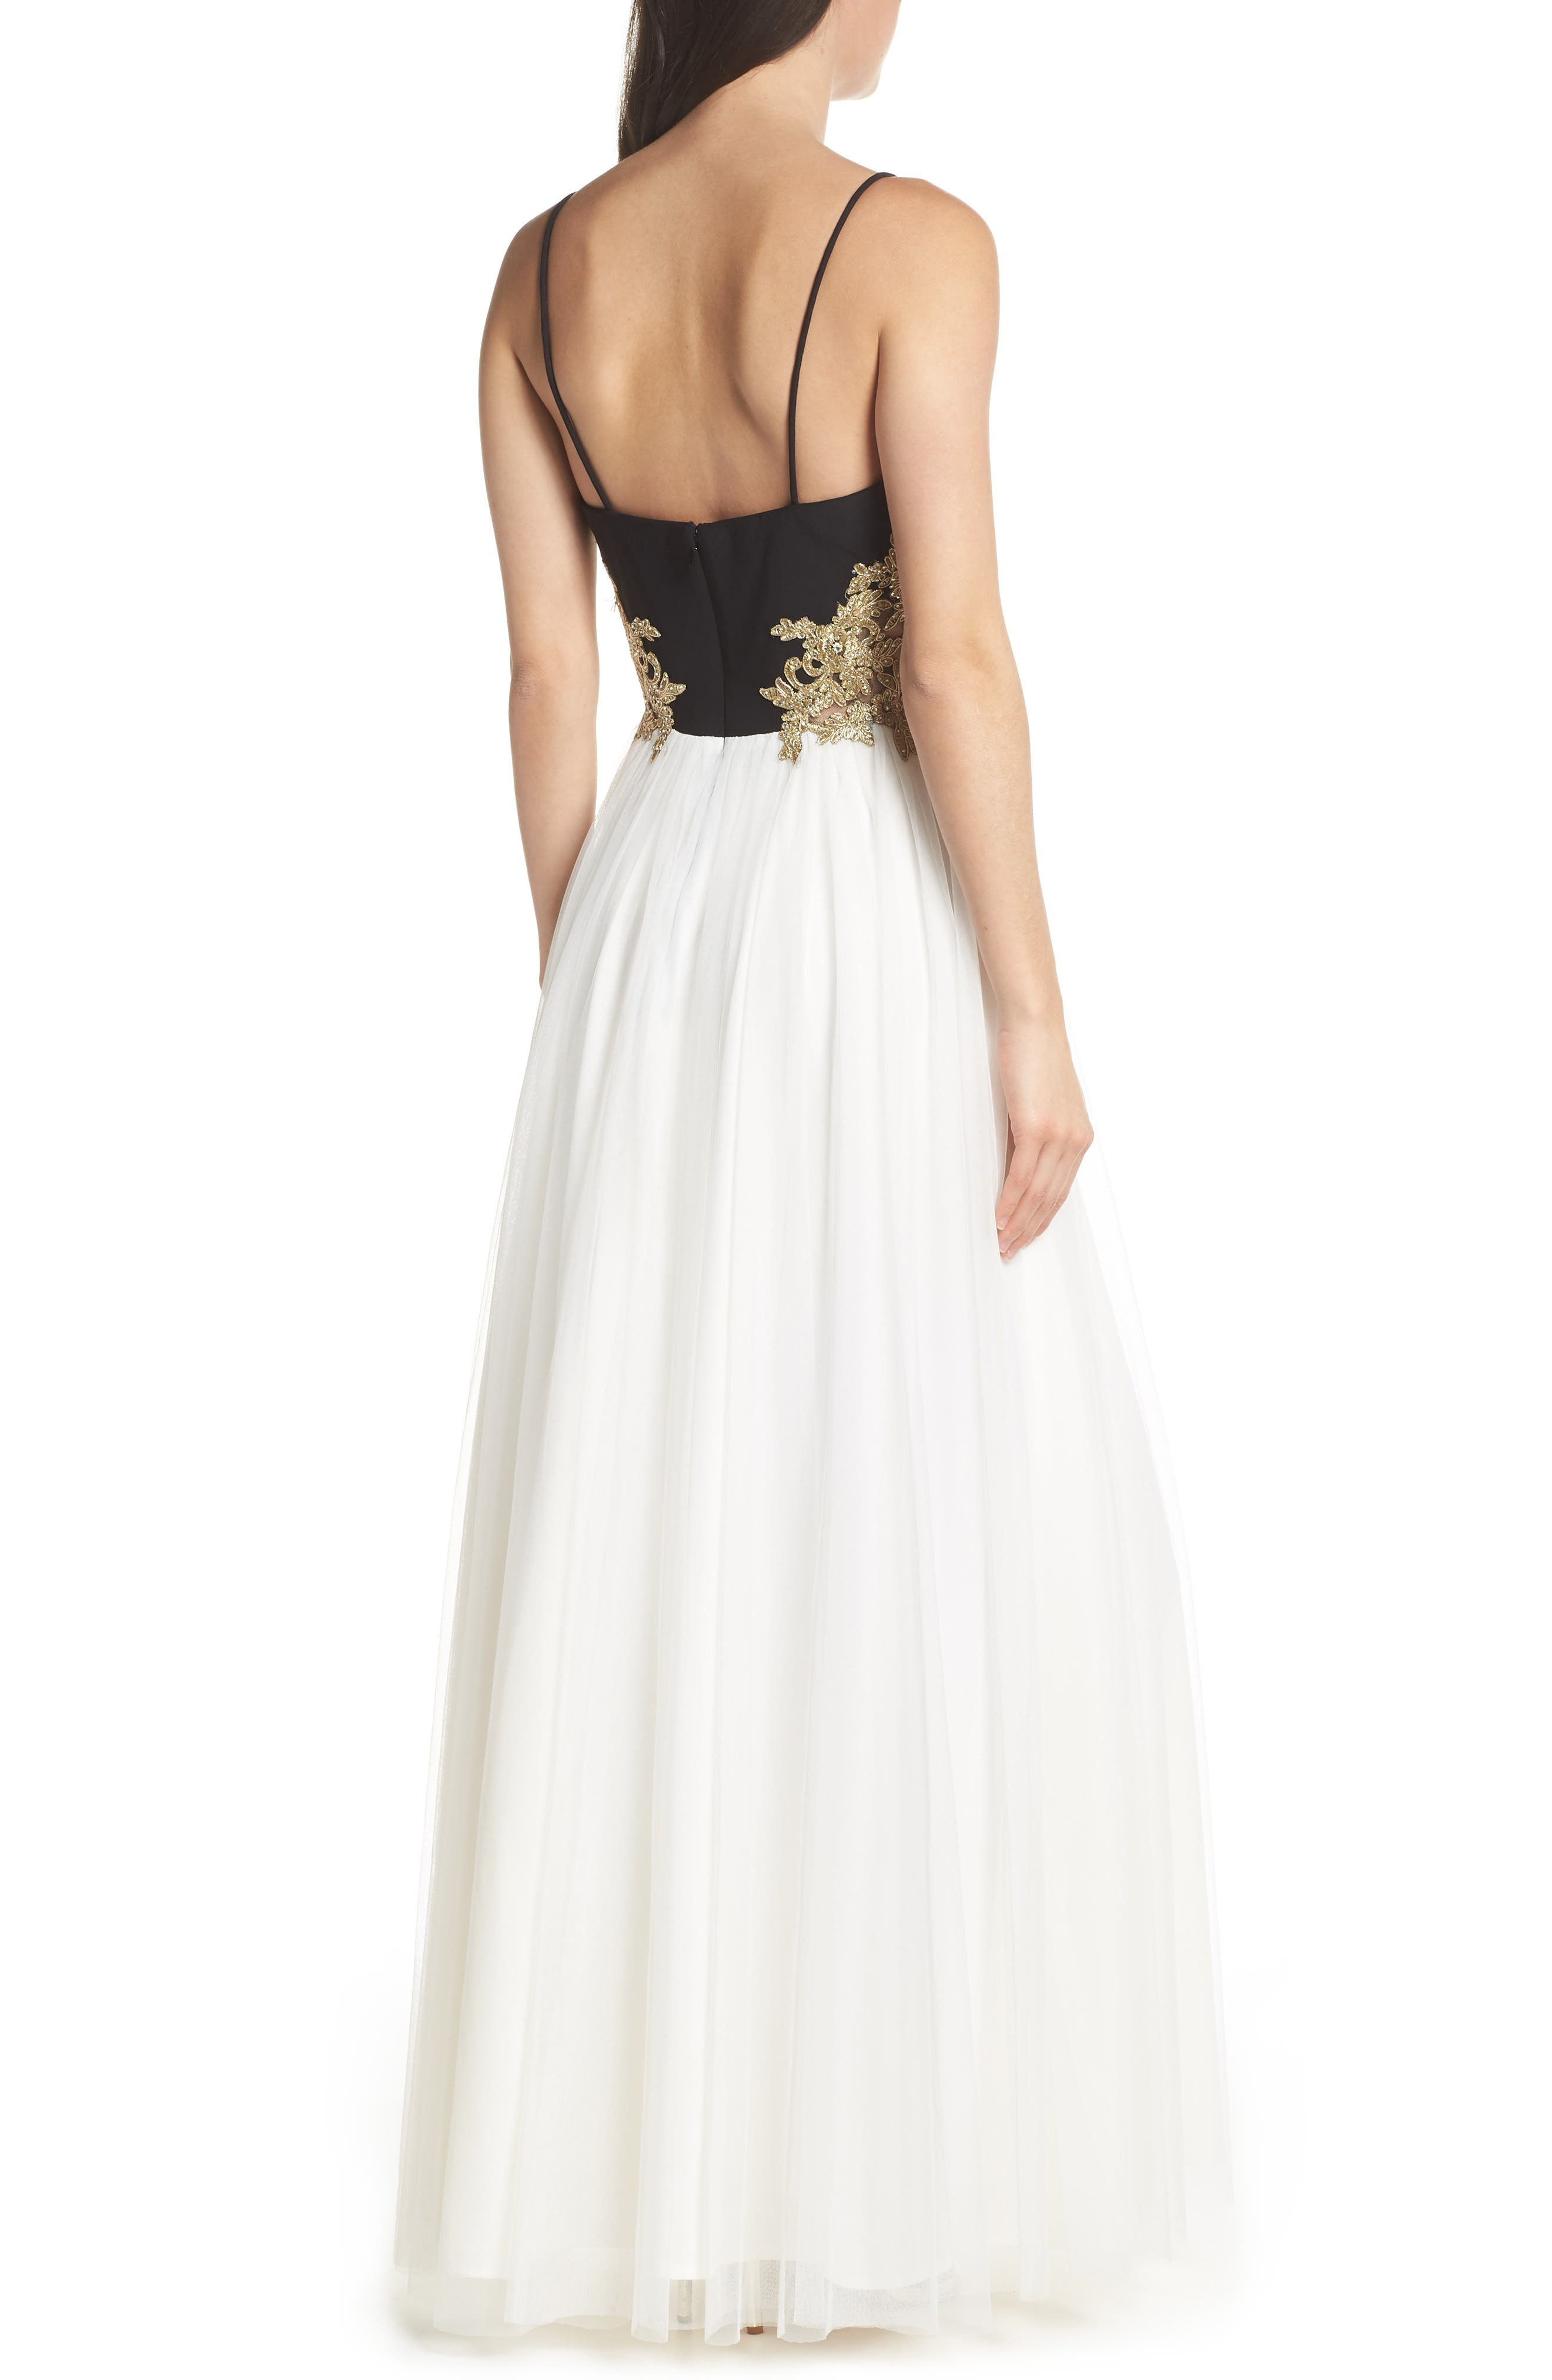 Blondie Nights Embellished Tulle Gown,                             Alternate thumbnail 2, color,                             Black/ Ivory/ Gold